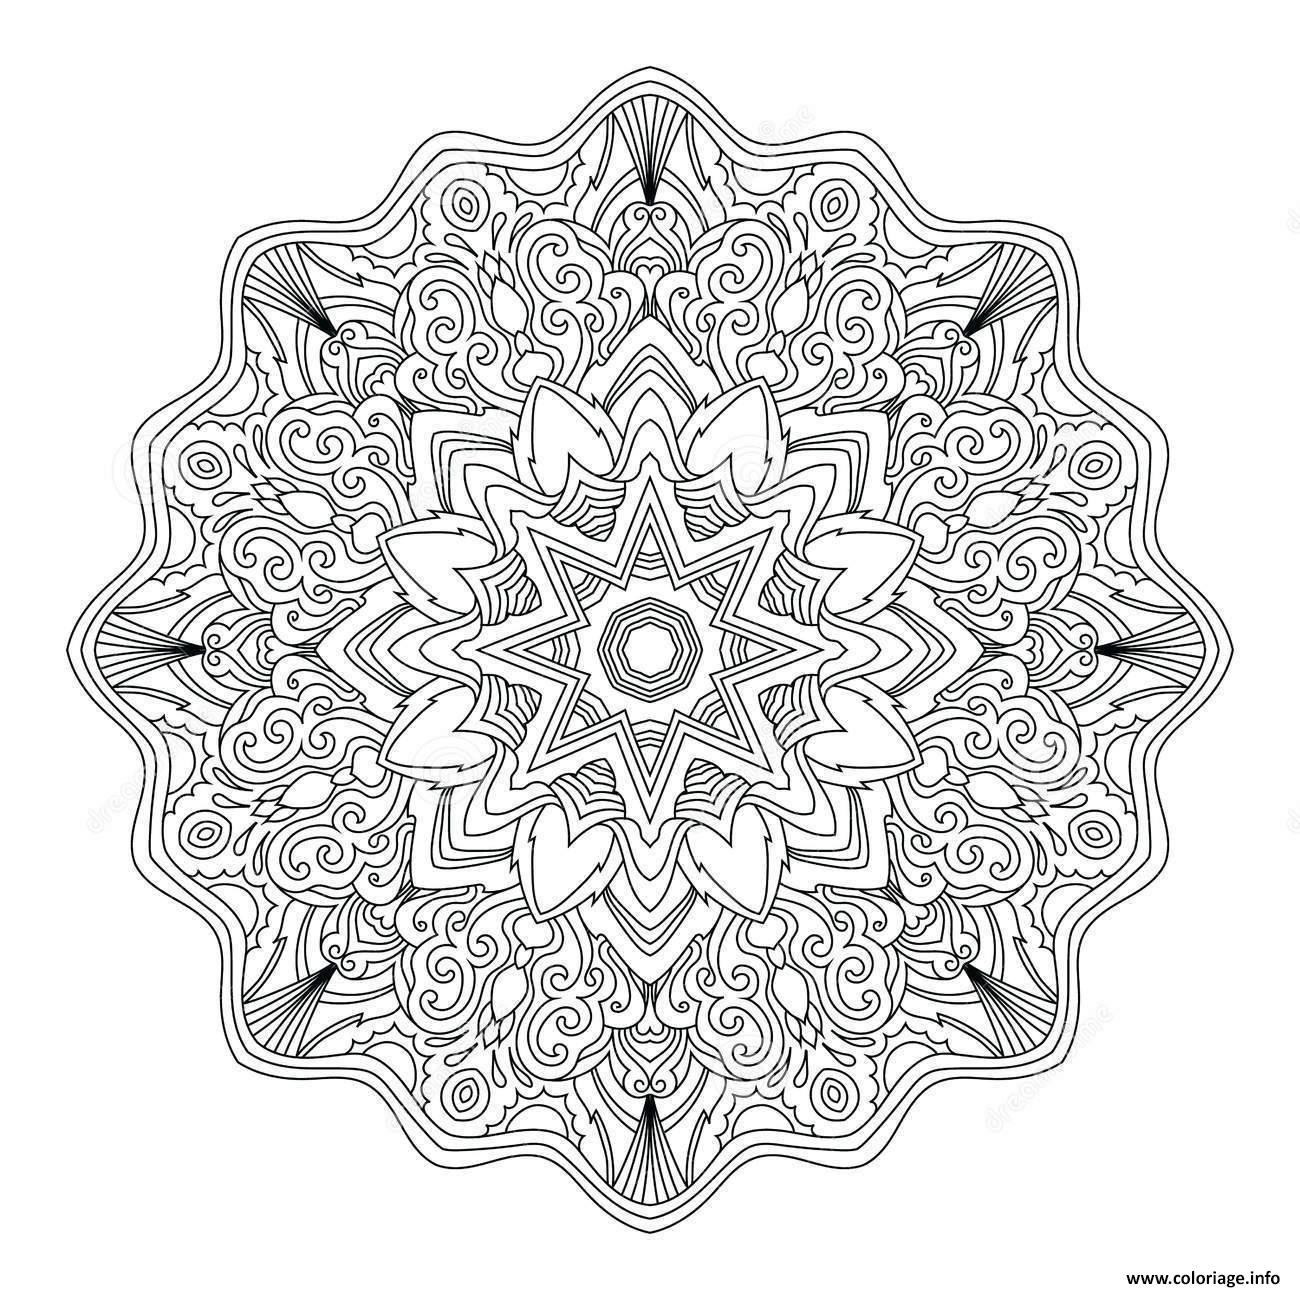 Coloriage mandala adulte abstrait art therapie dessin - Coloriage therapie ...